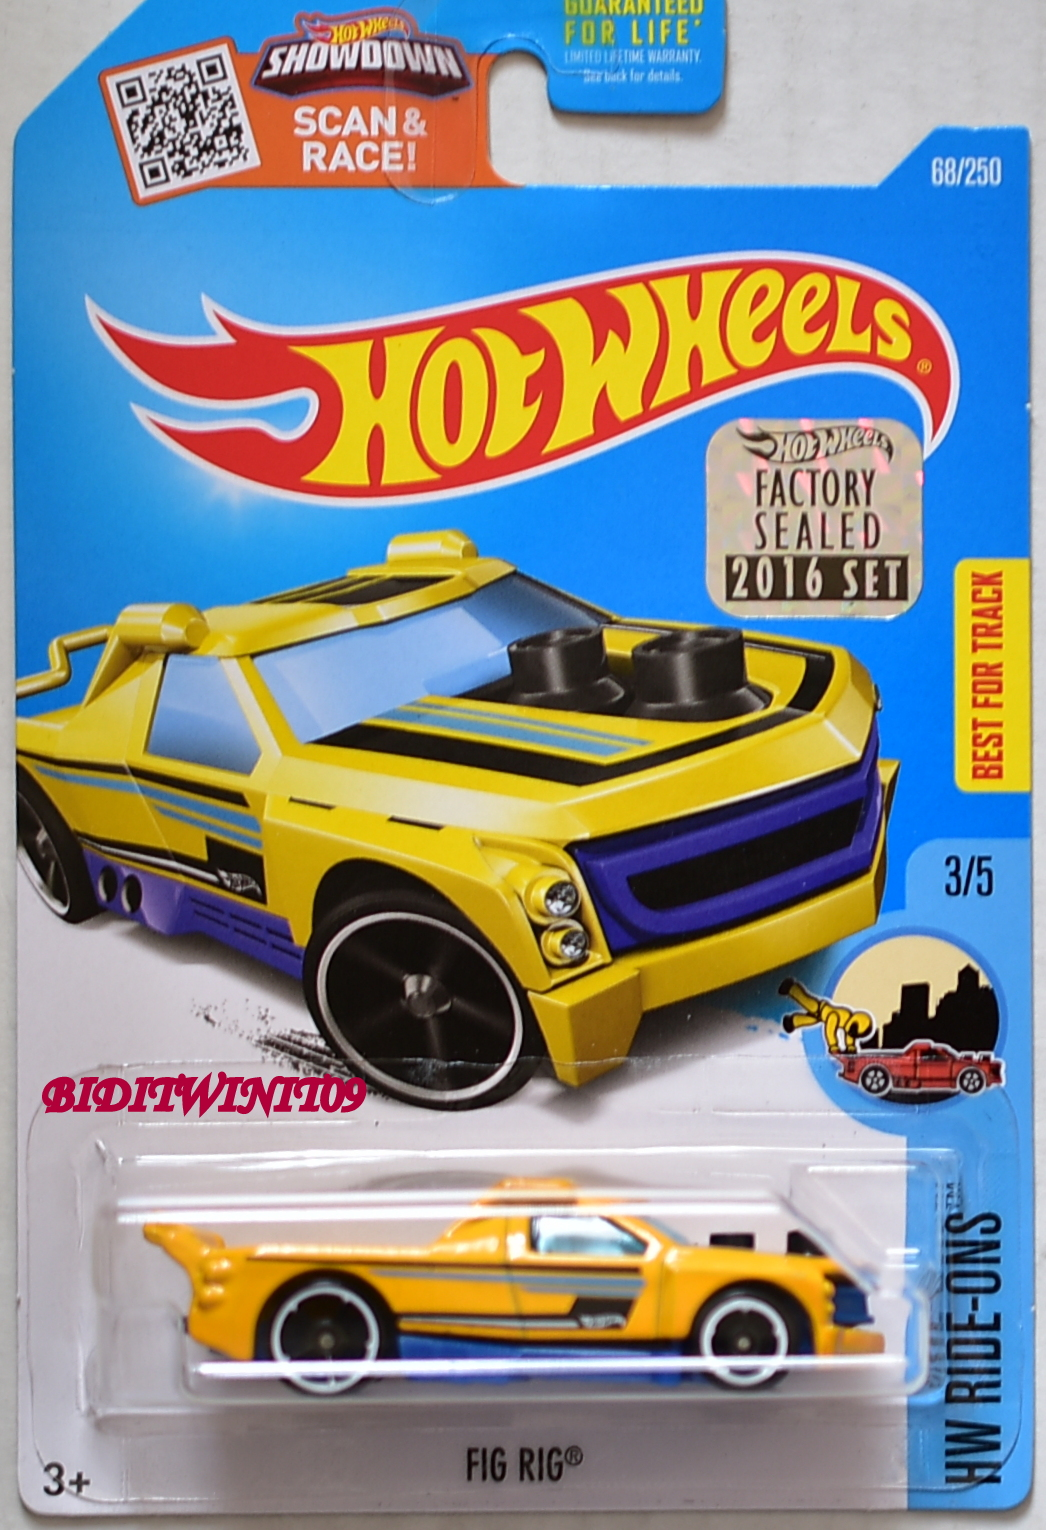 HOT WHEELS 2016 HW RIDE-ONS FIG RIG #3/5 YELLOW FACTORY SEALED